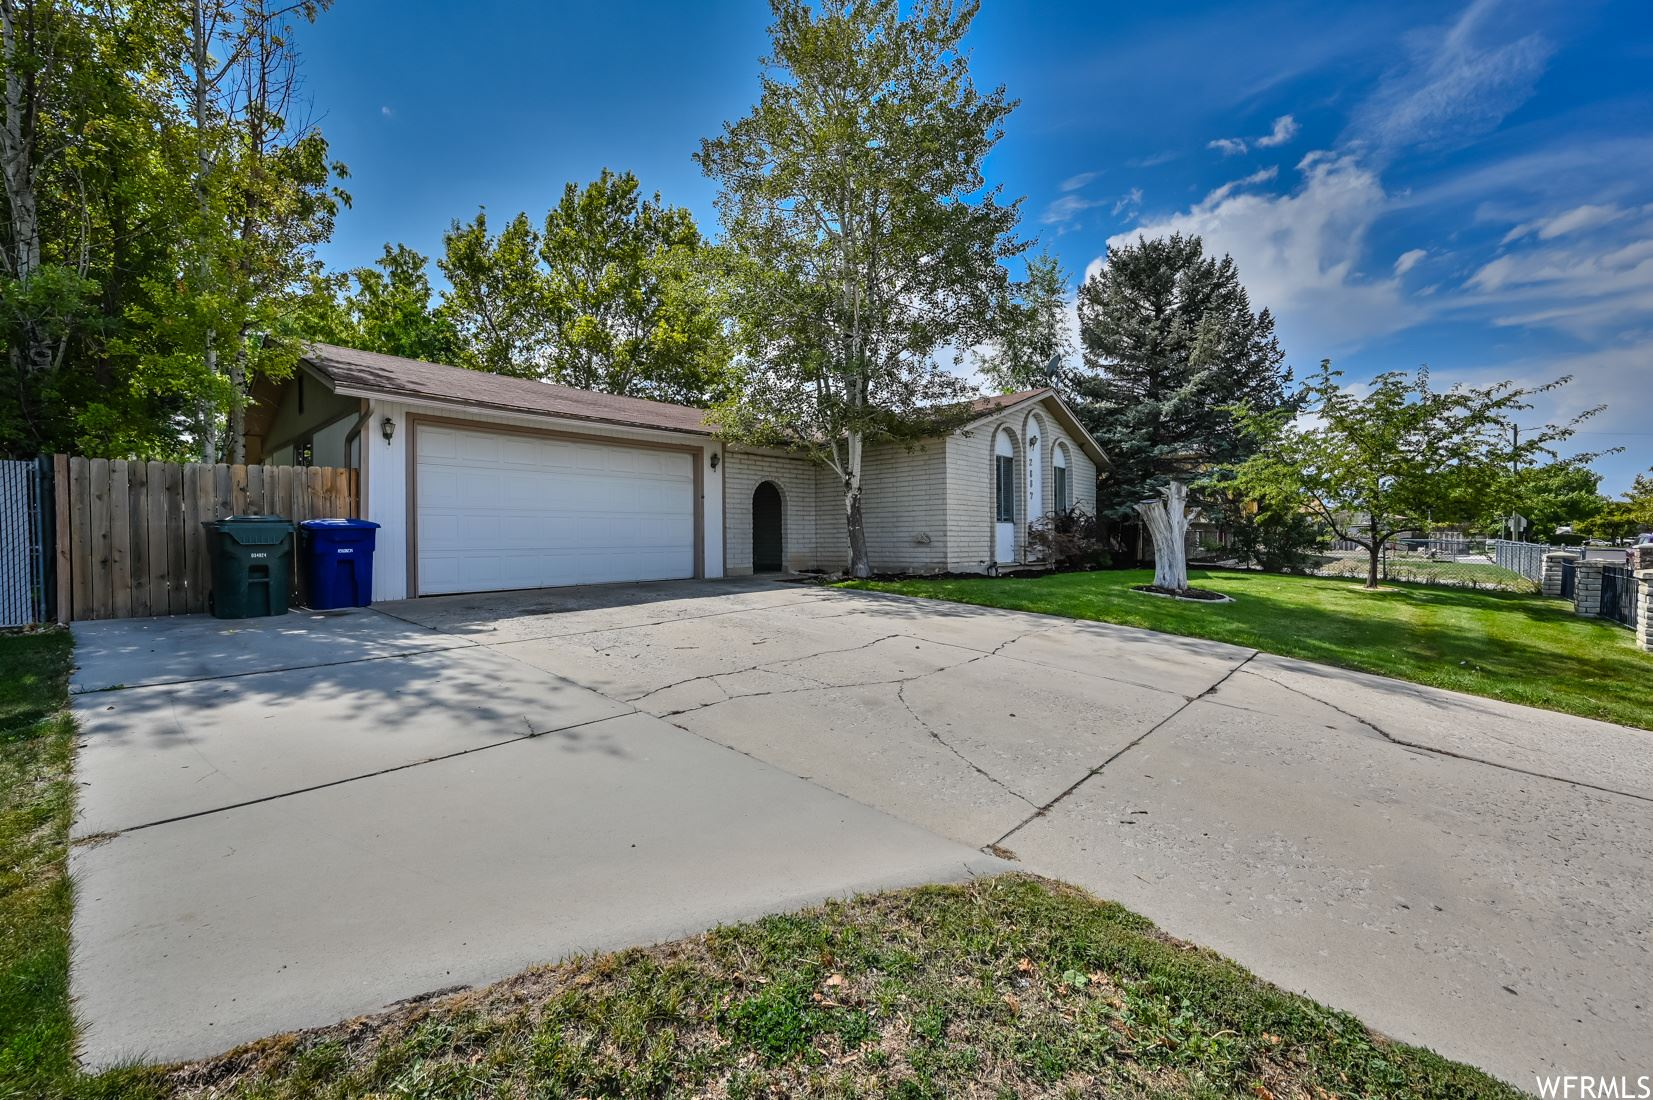 Photo of 2887 W WHITEHALL S DR, West Valley City, UT 84119 (MLS # 1770360)